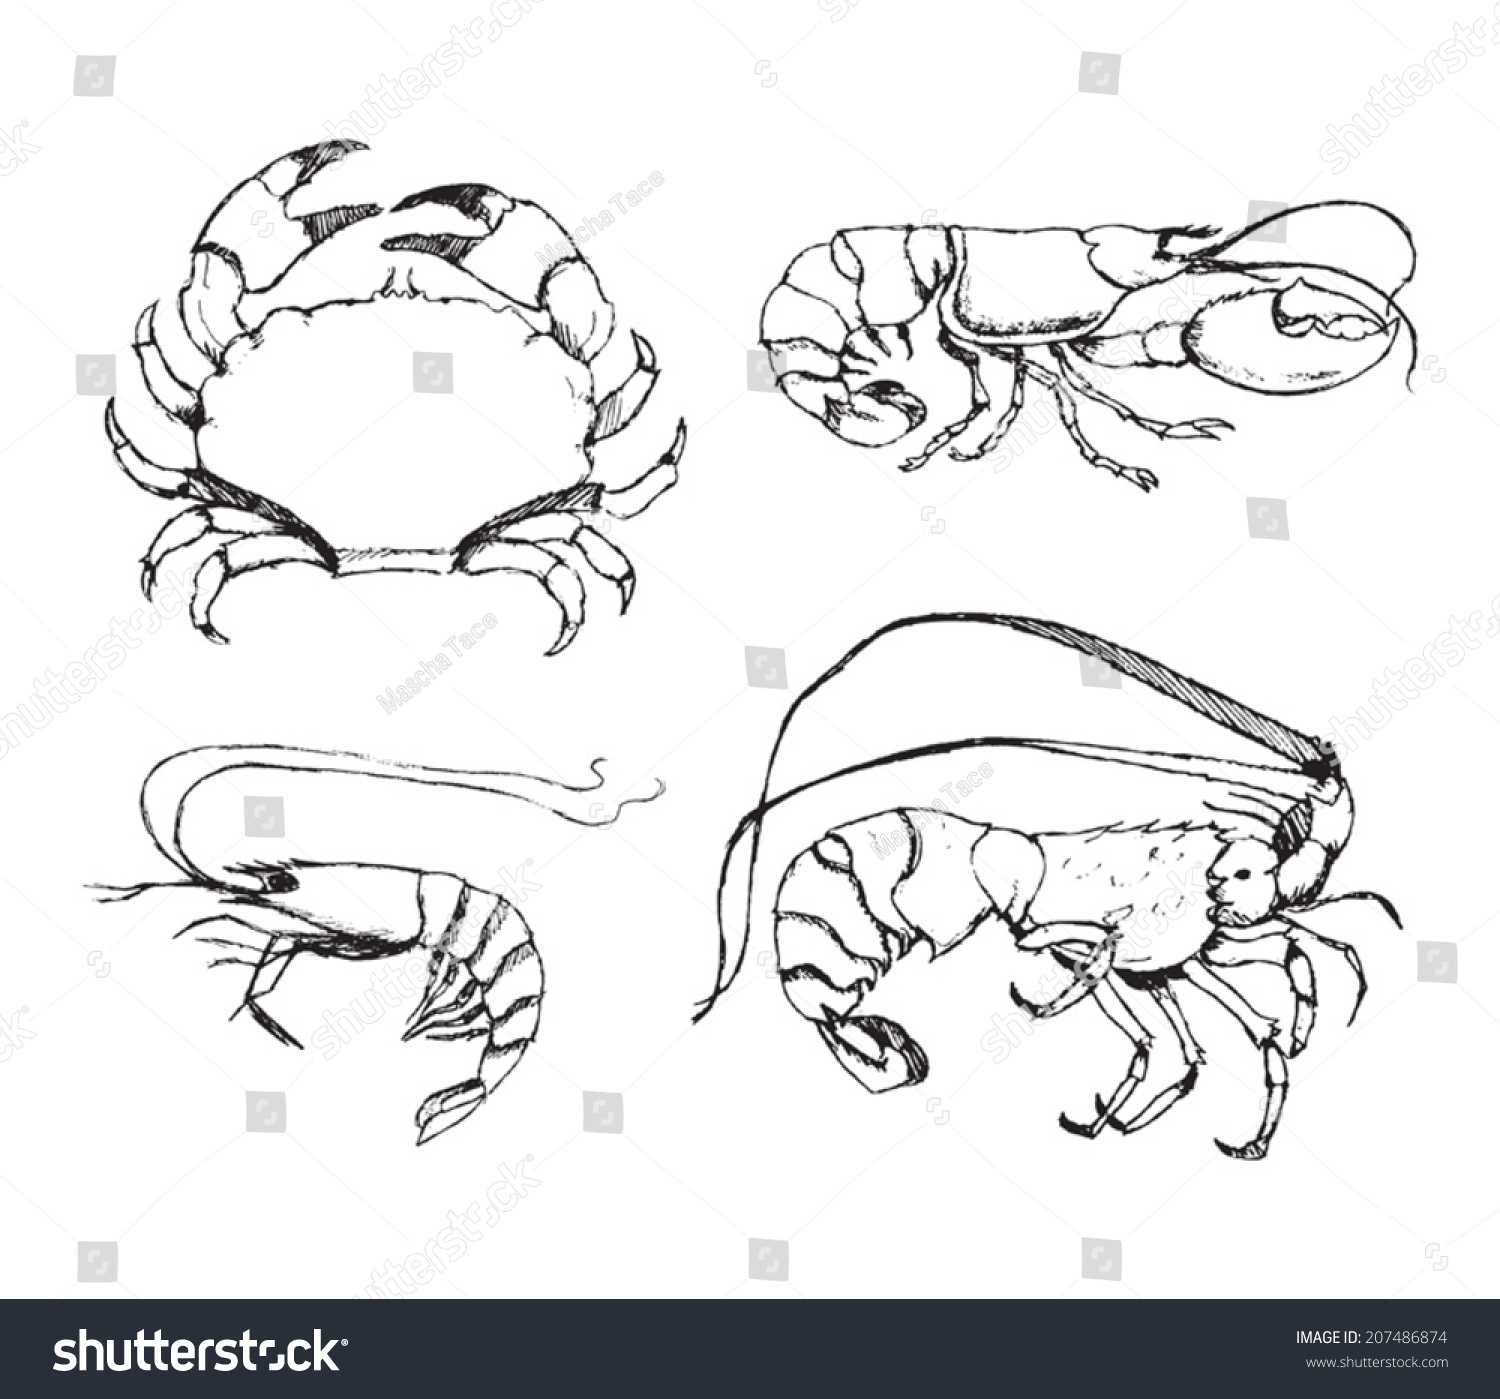 Uncategorized Lobster Drawings vector sketchy drawings shrimp lobster crab stock 207486874 of and spiny on white background